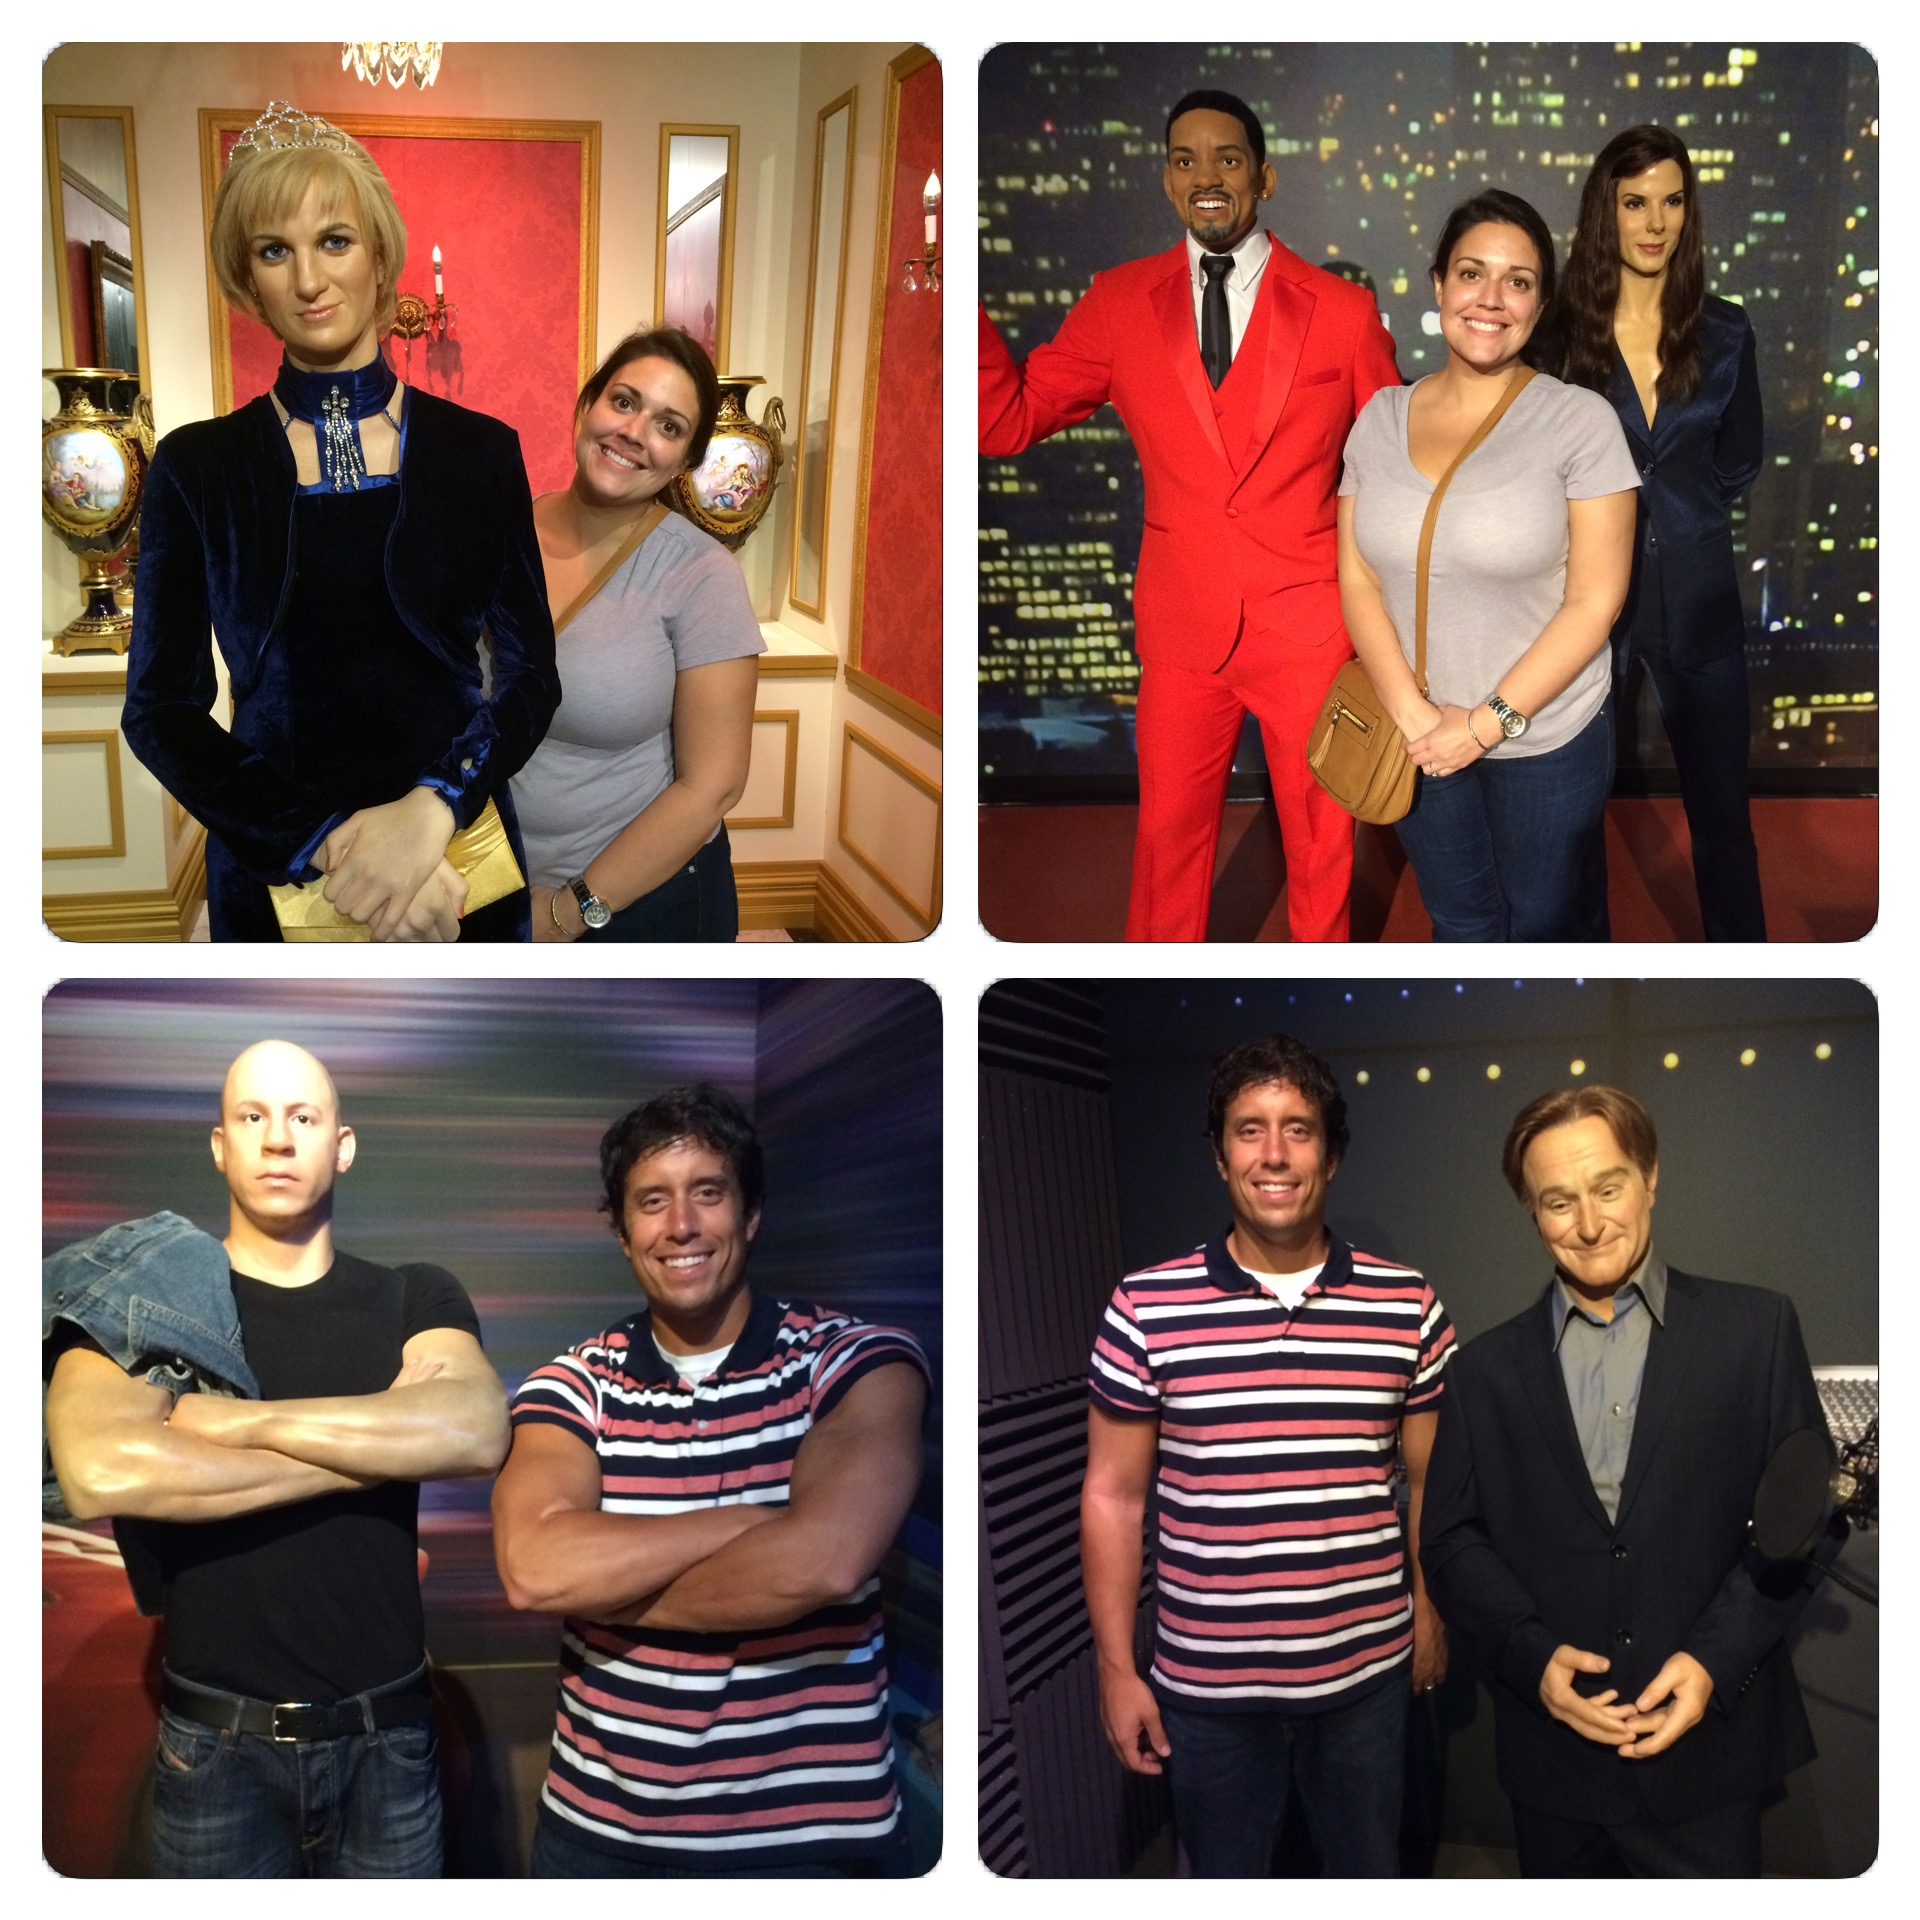 Some of the wax figures depicted certain celebrities right on while others were a little bit of a stretch.